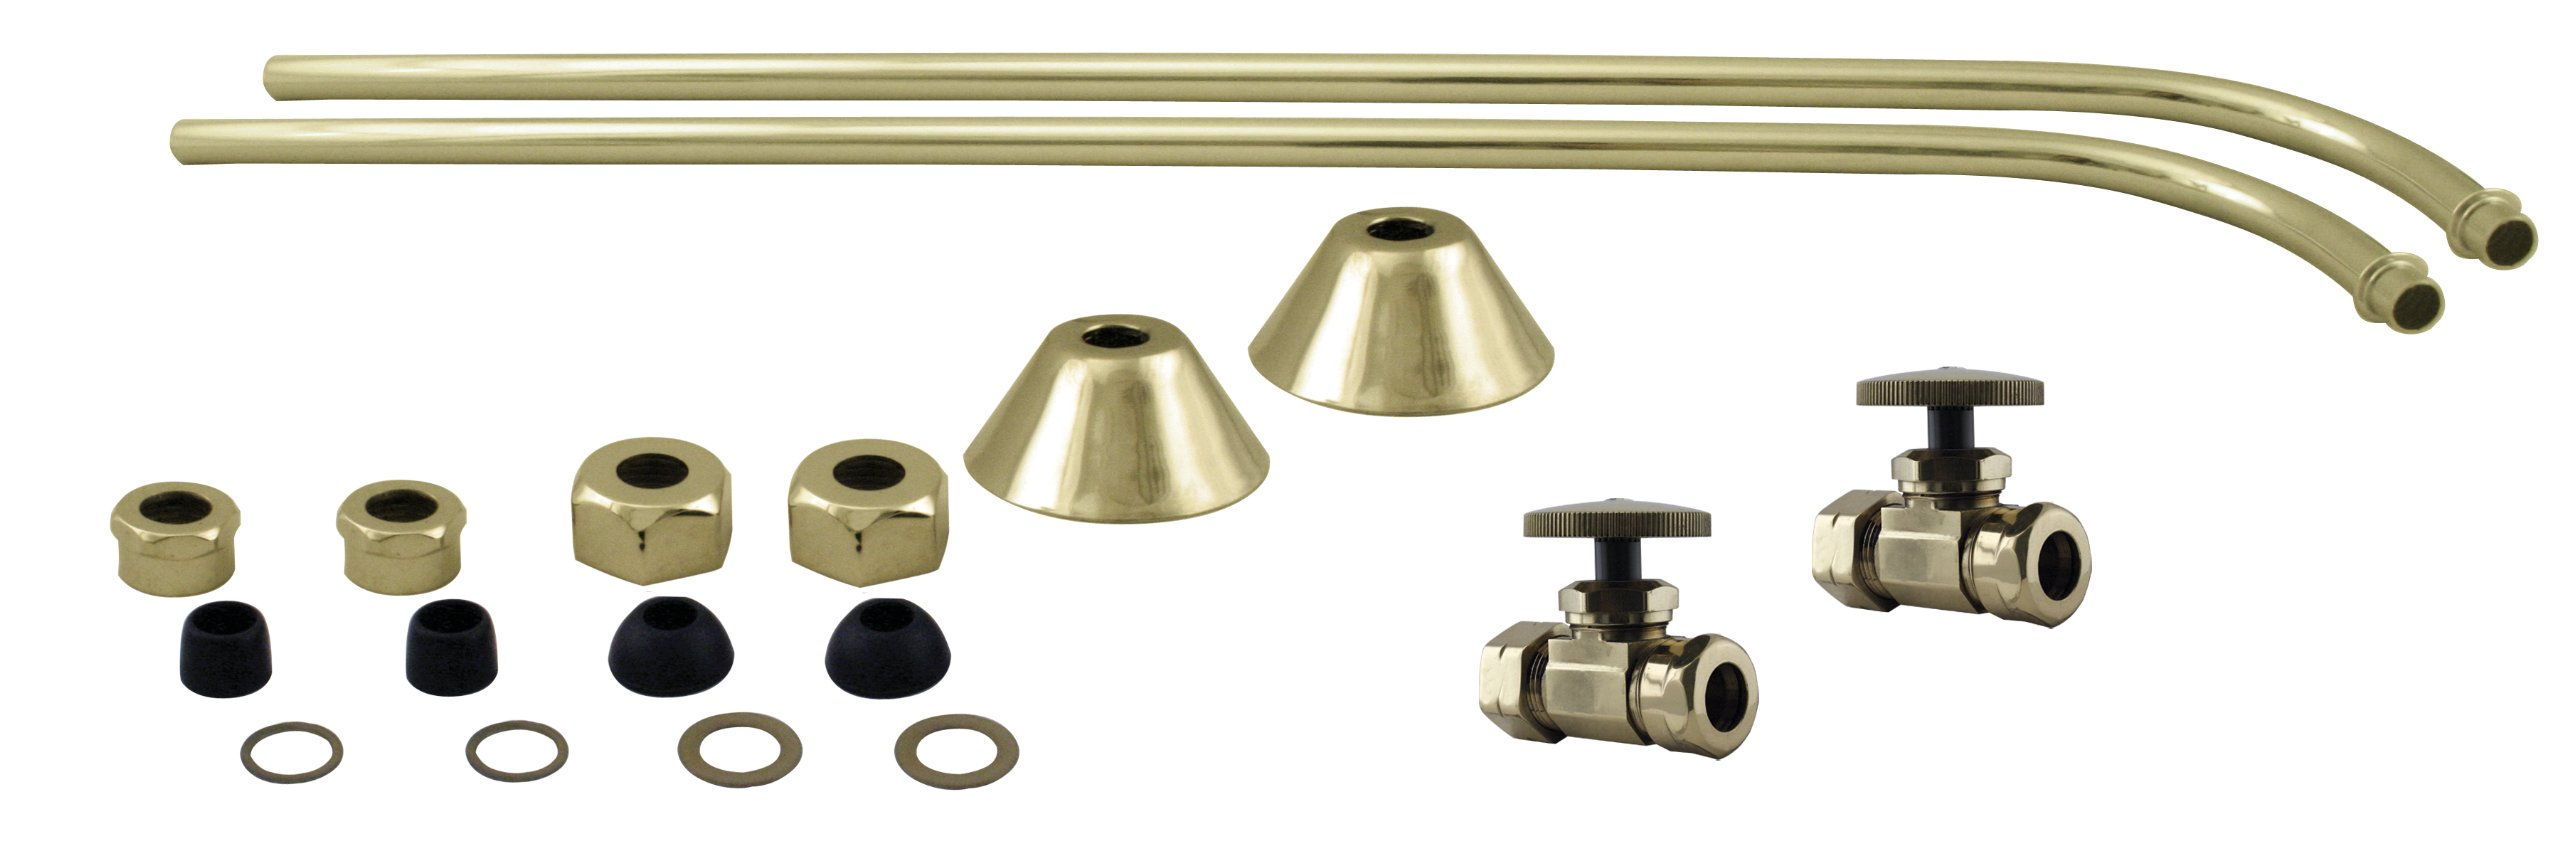 Westbrass 1/2'' Copper Stops & Single Offset Bath Supply with Round Handles, Polished Brass, D135-110-01